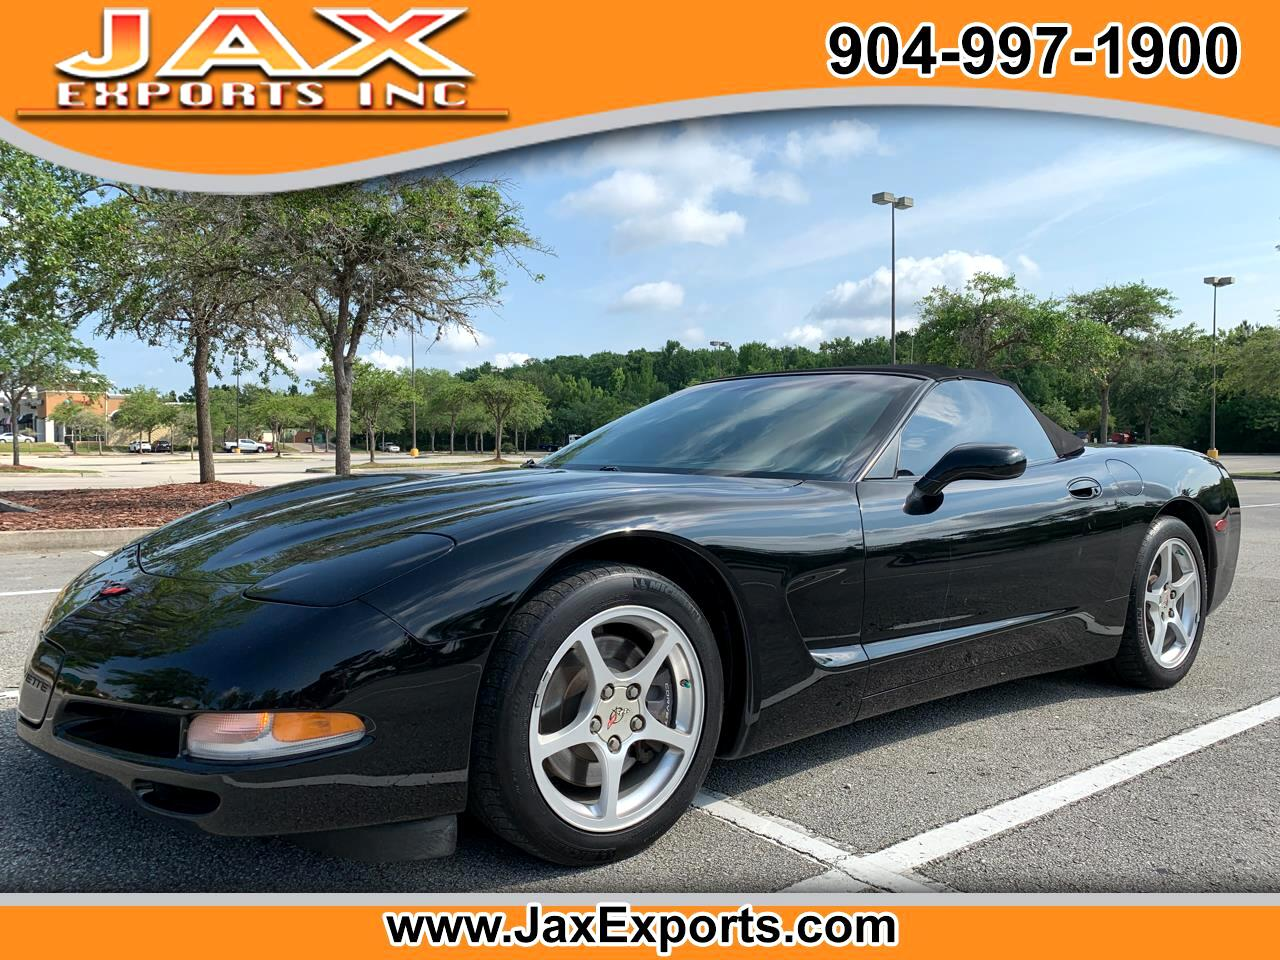 1999 Chevrolet Corvette 1LT Coupe Manual